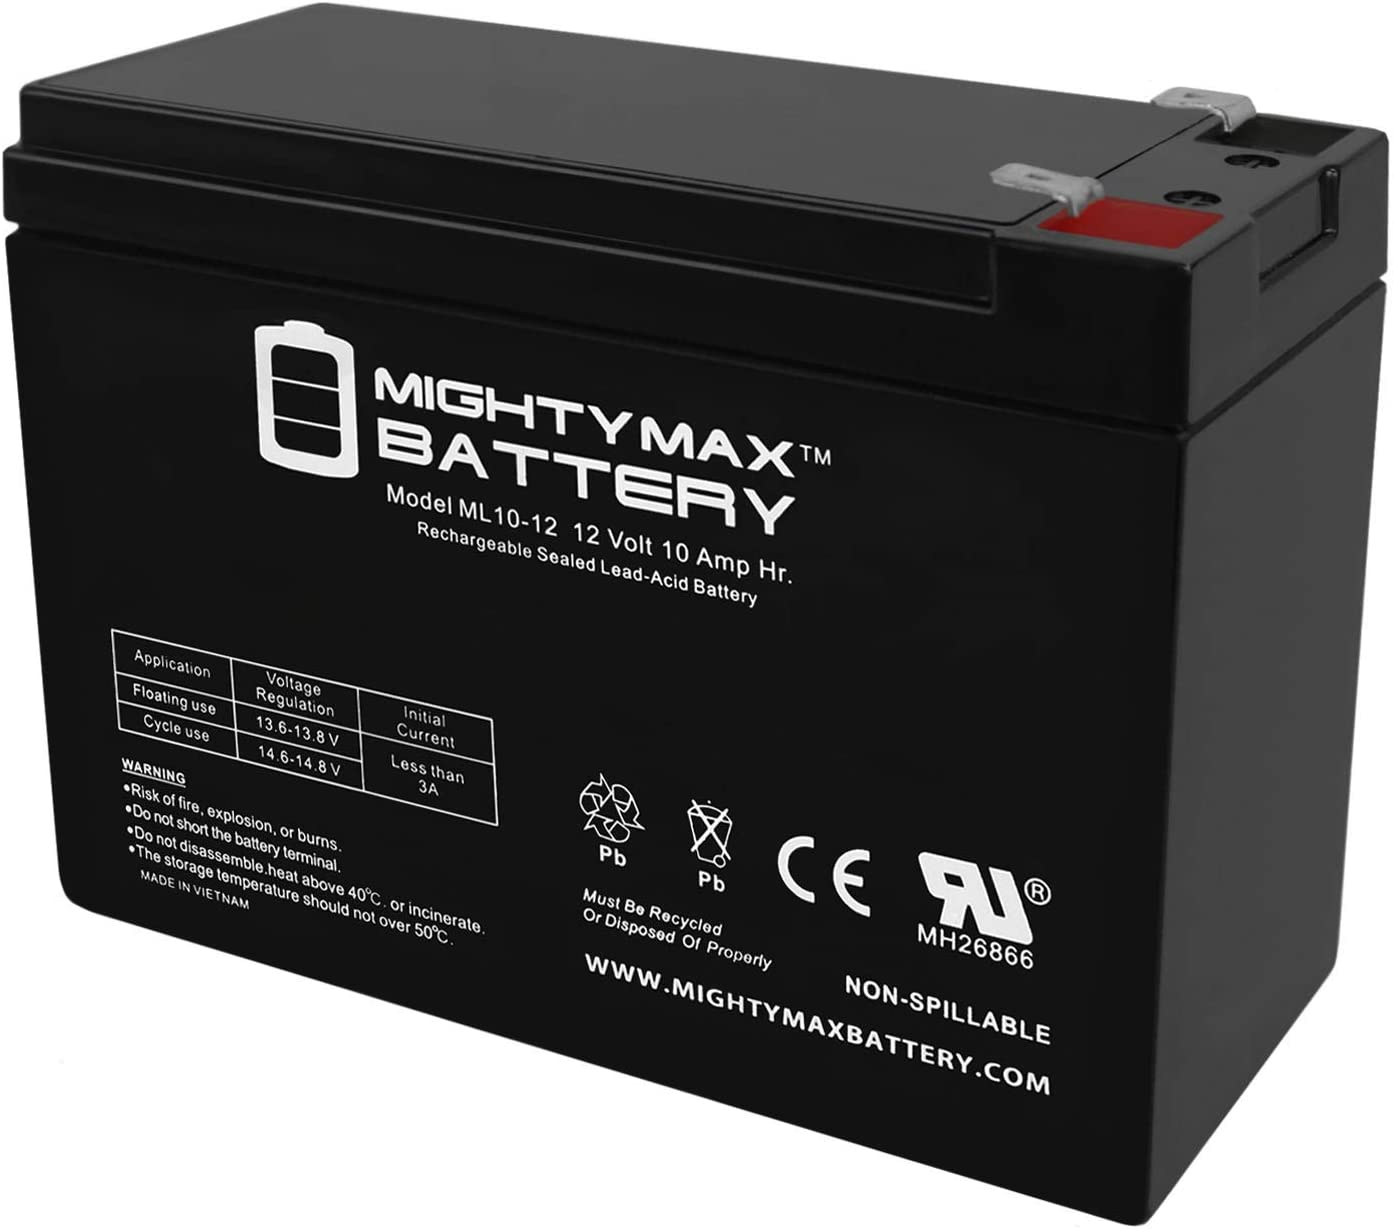 Mighty Max Battery ML10-12 - 12V 10AH 26058 CB10-12 CE5 CE6 MA 2.0 Lawn Mower Battery Brand Product